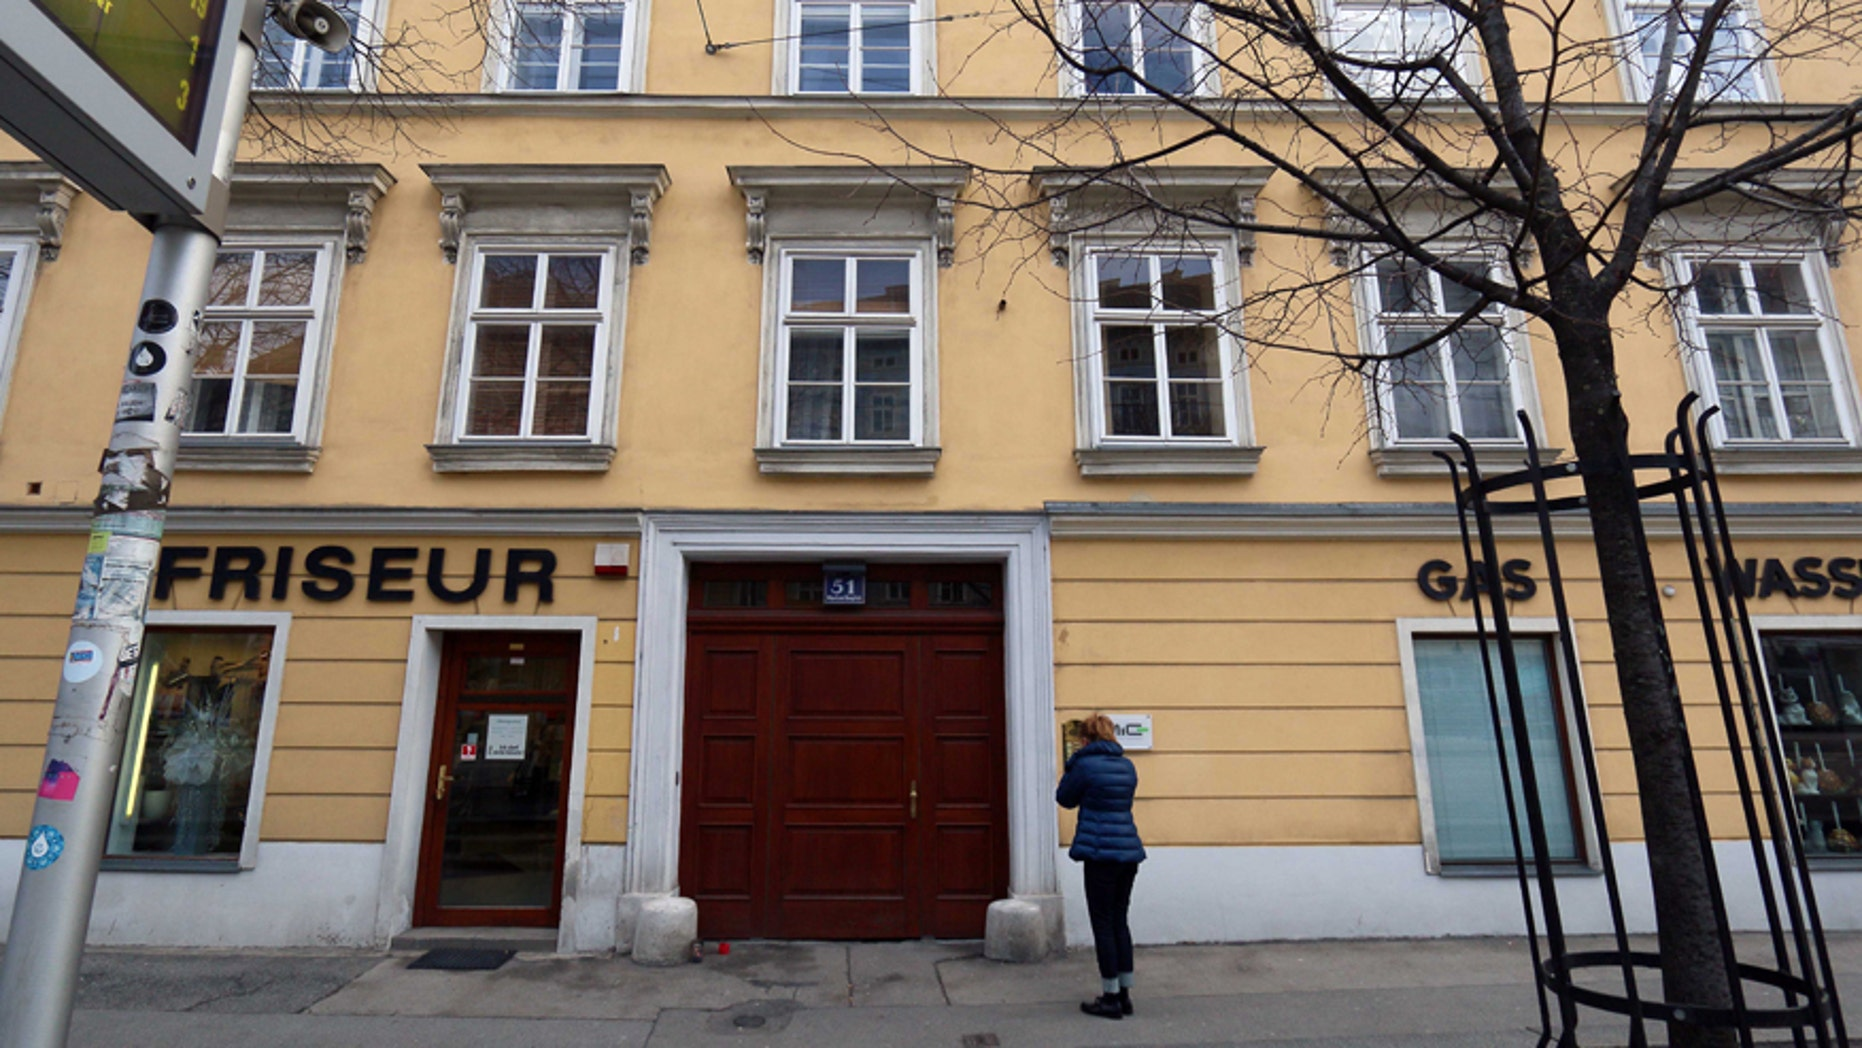 Jan. 28, 2016: An apartment building is pictured where a 25-year old woman from Colorado, United States, has been found dead in Vienna, Austria.